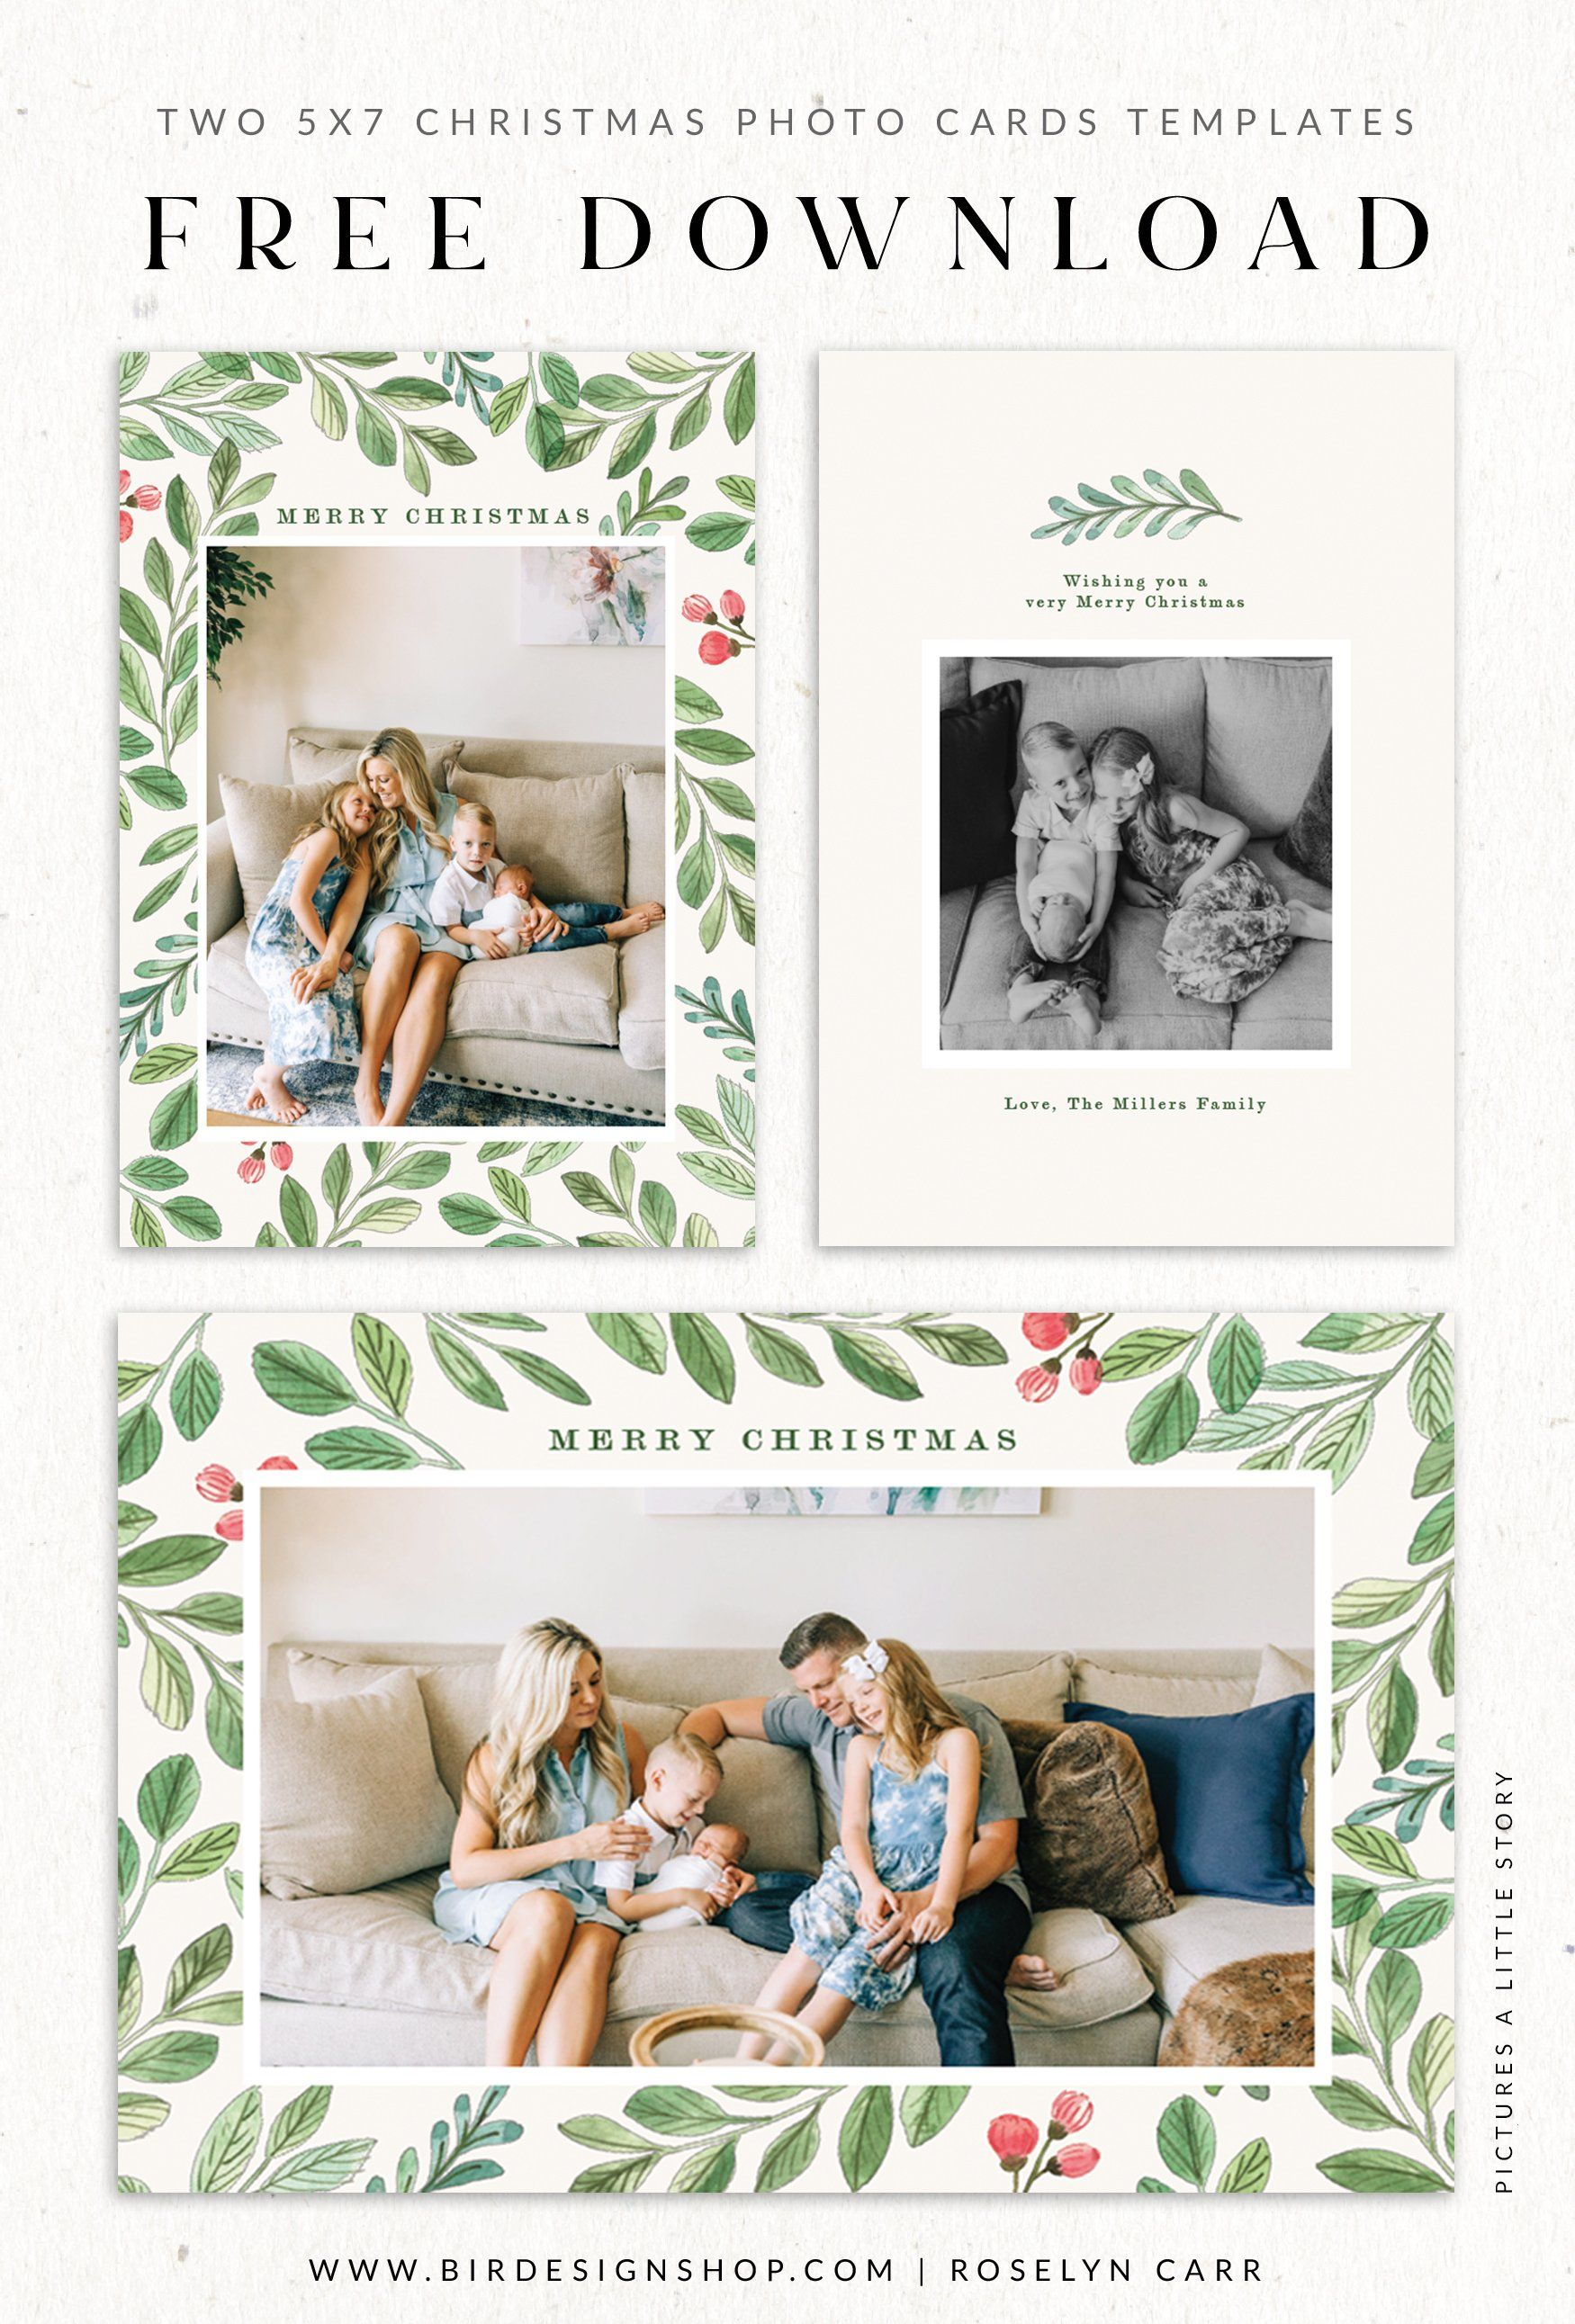 Free Floral Christmas Cards Free Christmas Photo Cards Christmas Cards Free Free Christmas Photo Card Templates